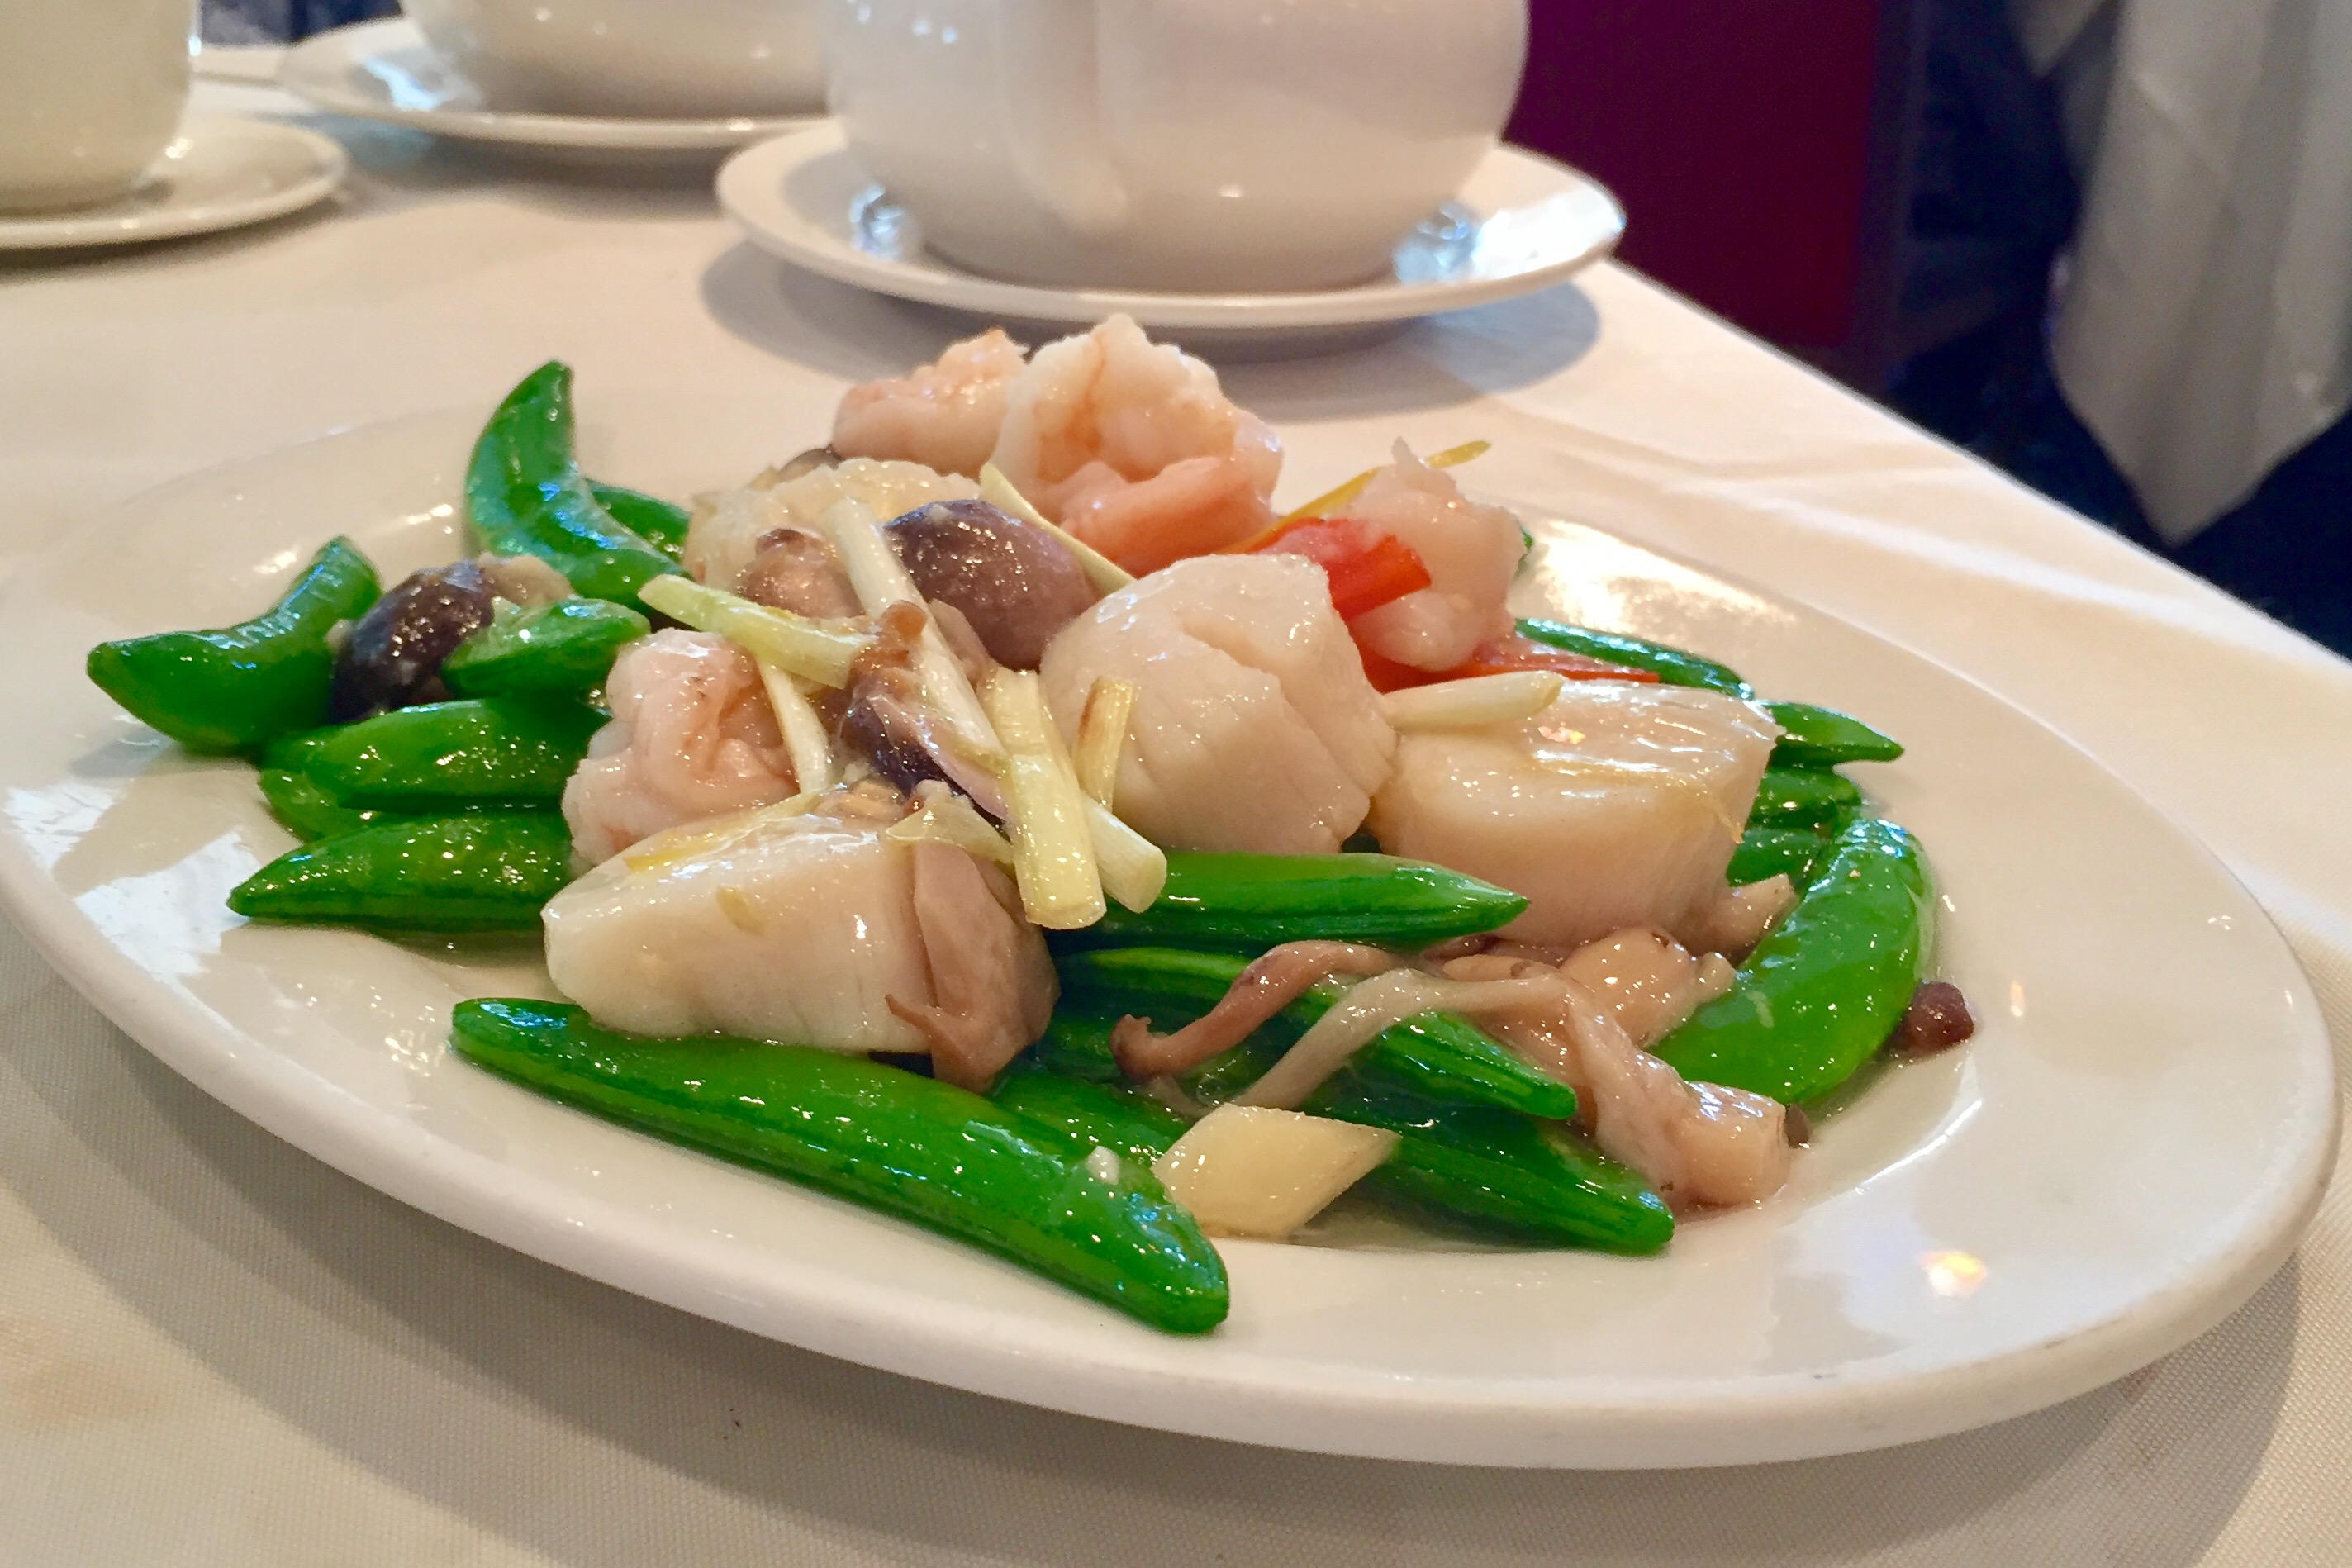 Scallop and Prawn Sautéed with Snap Peas and Assorted Mushrooms